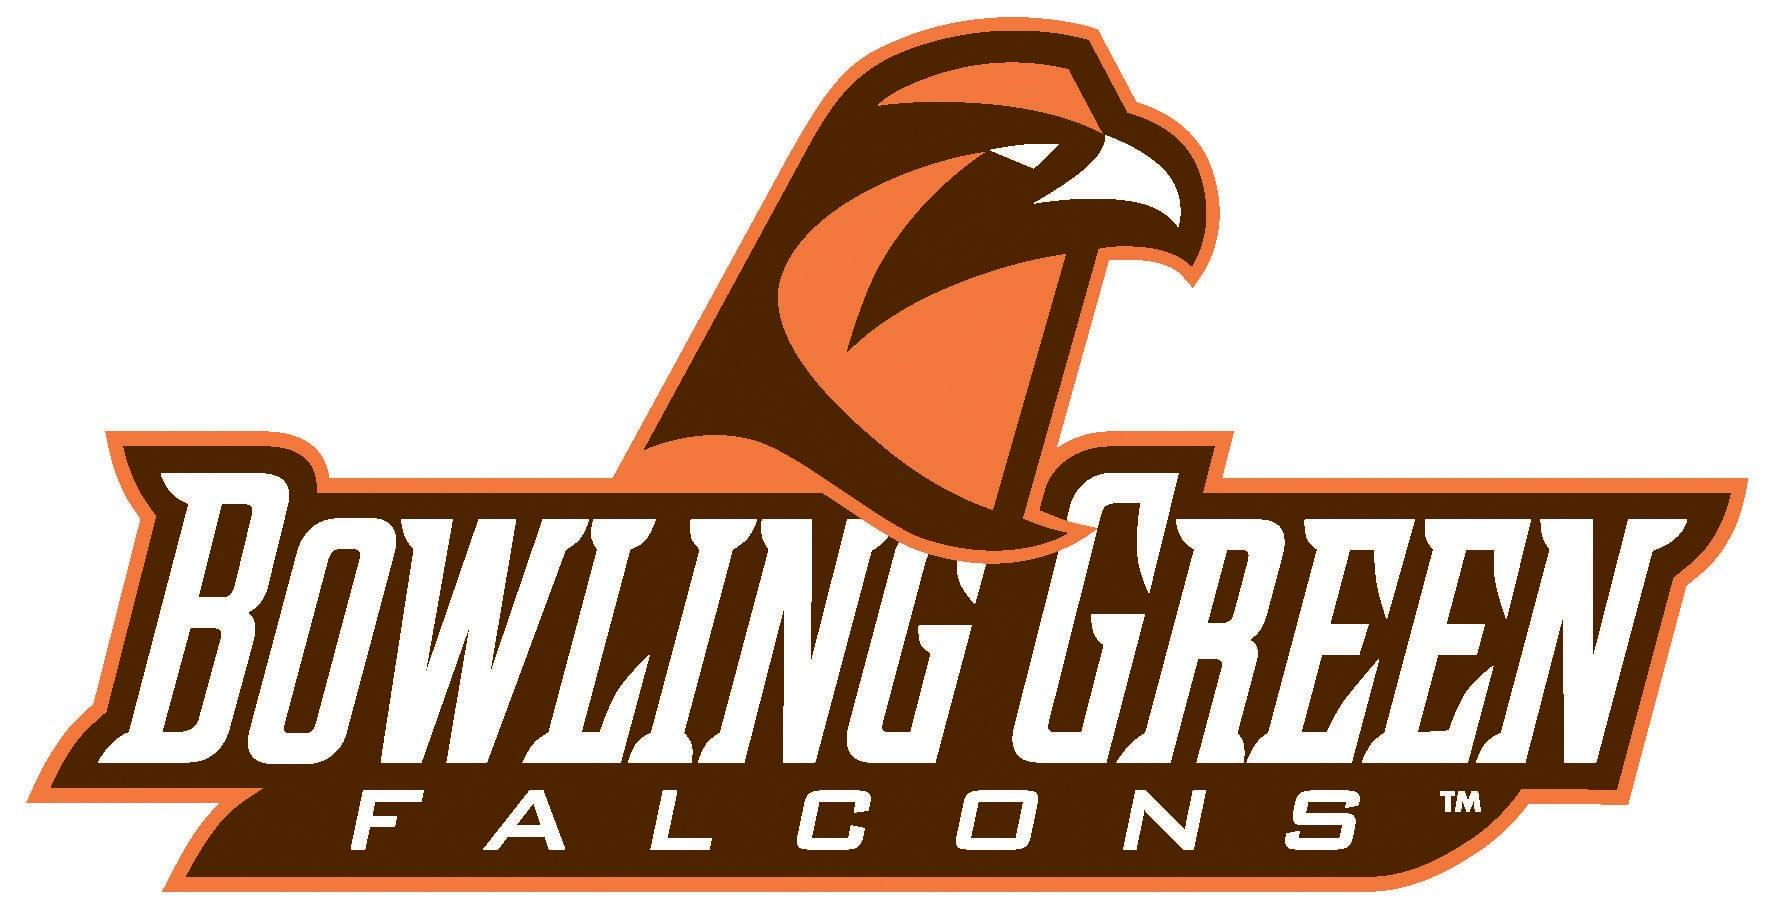 Mandarin's Jaylen Smith second local prospect to commit to Bowling Green